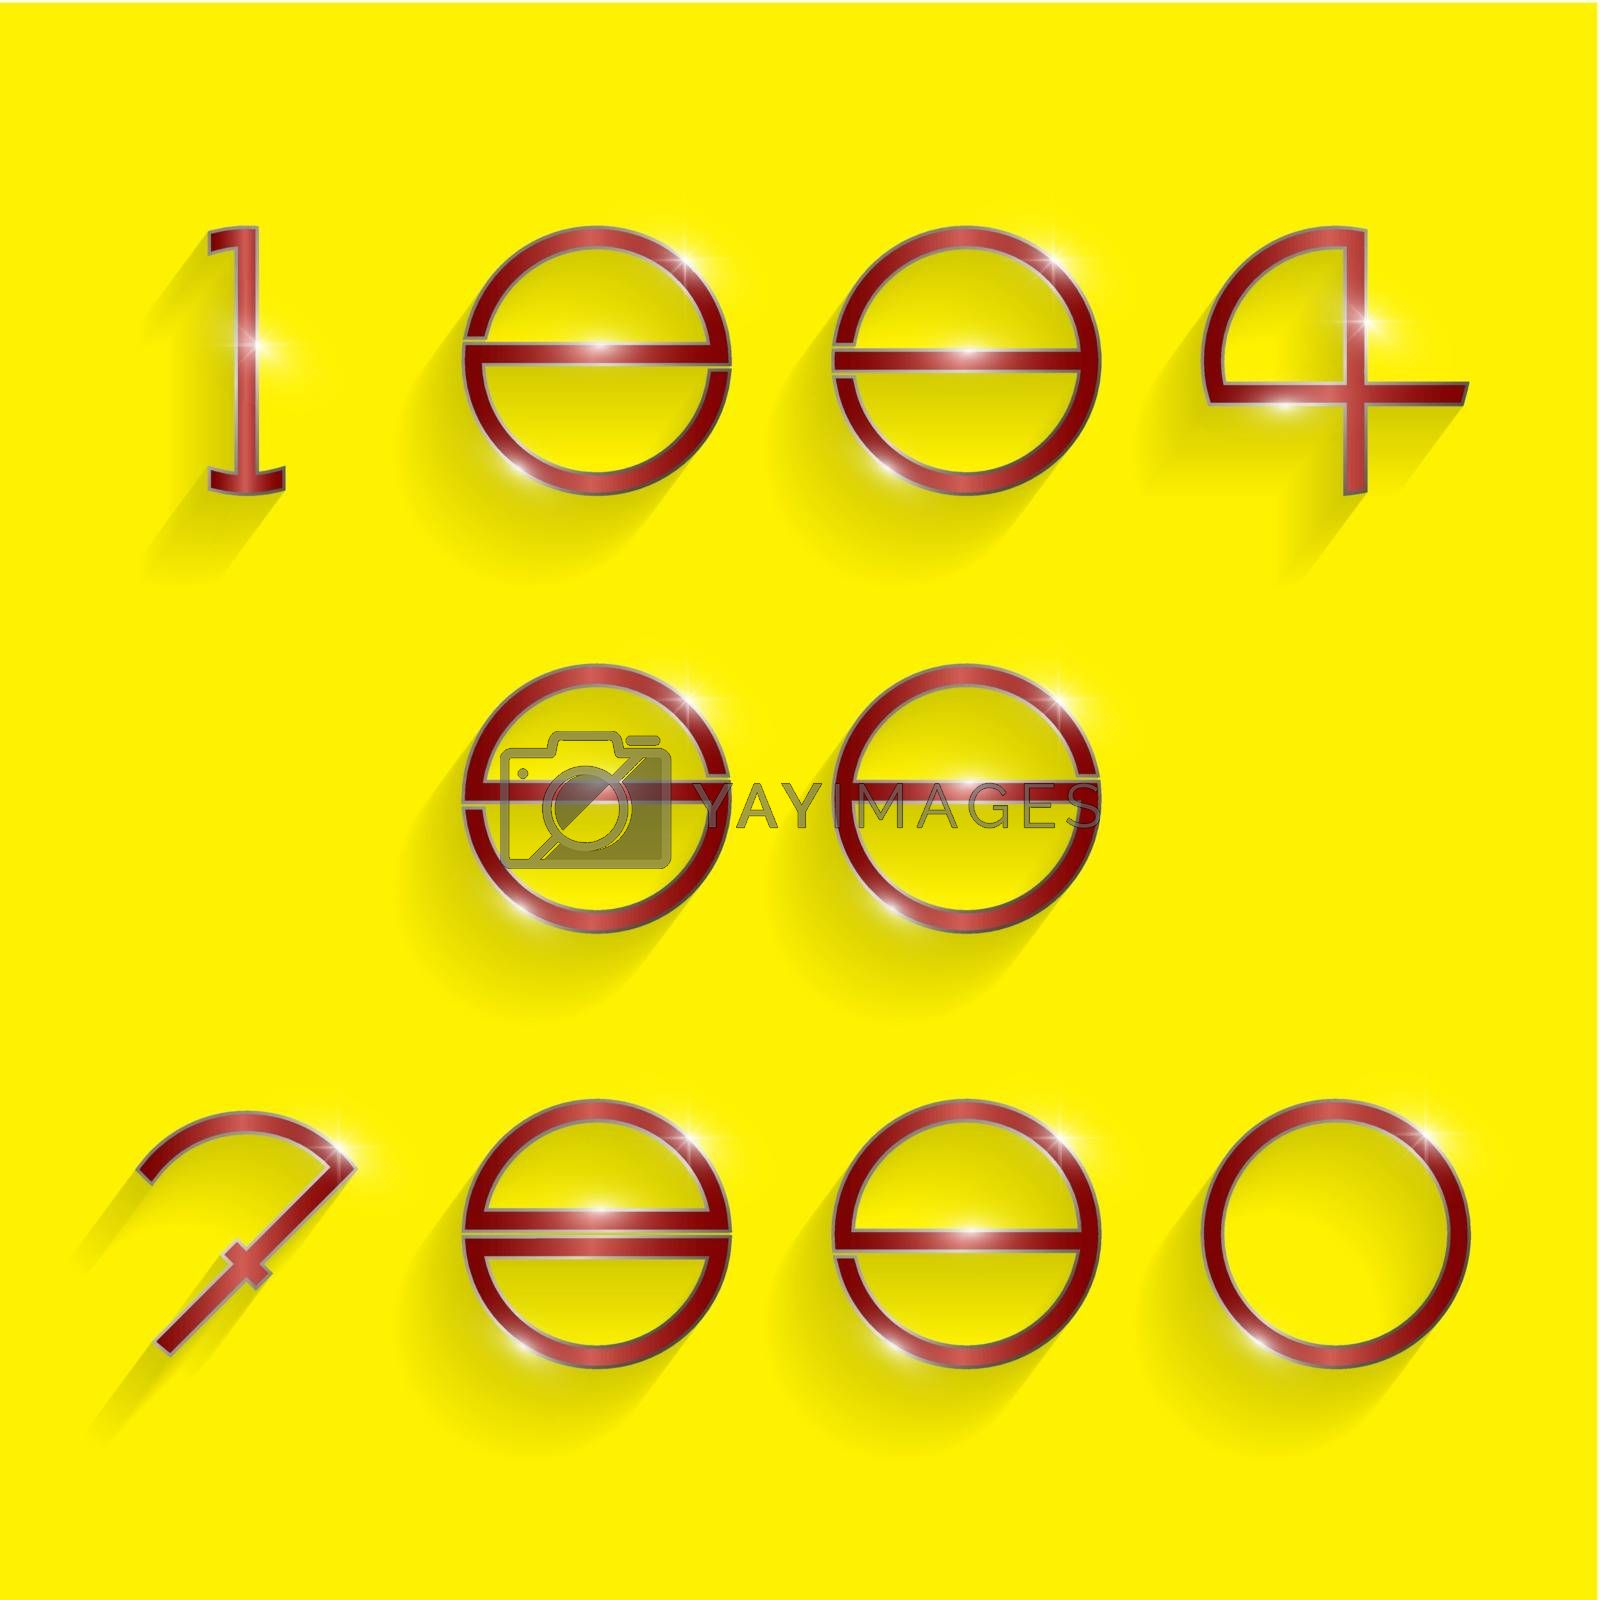 Royalty free image of circle digit style by chatchai5172